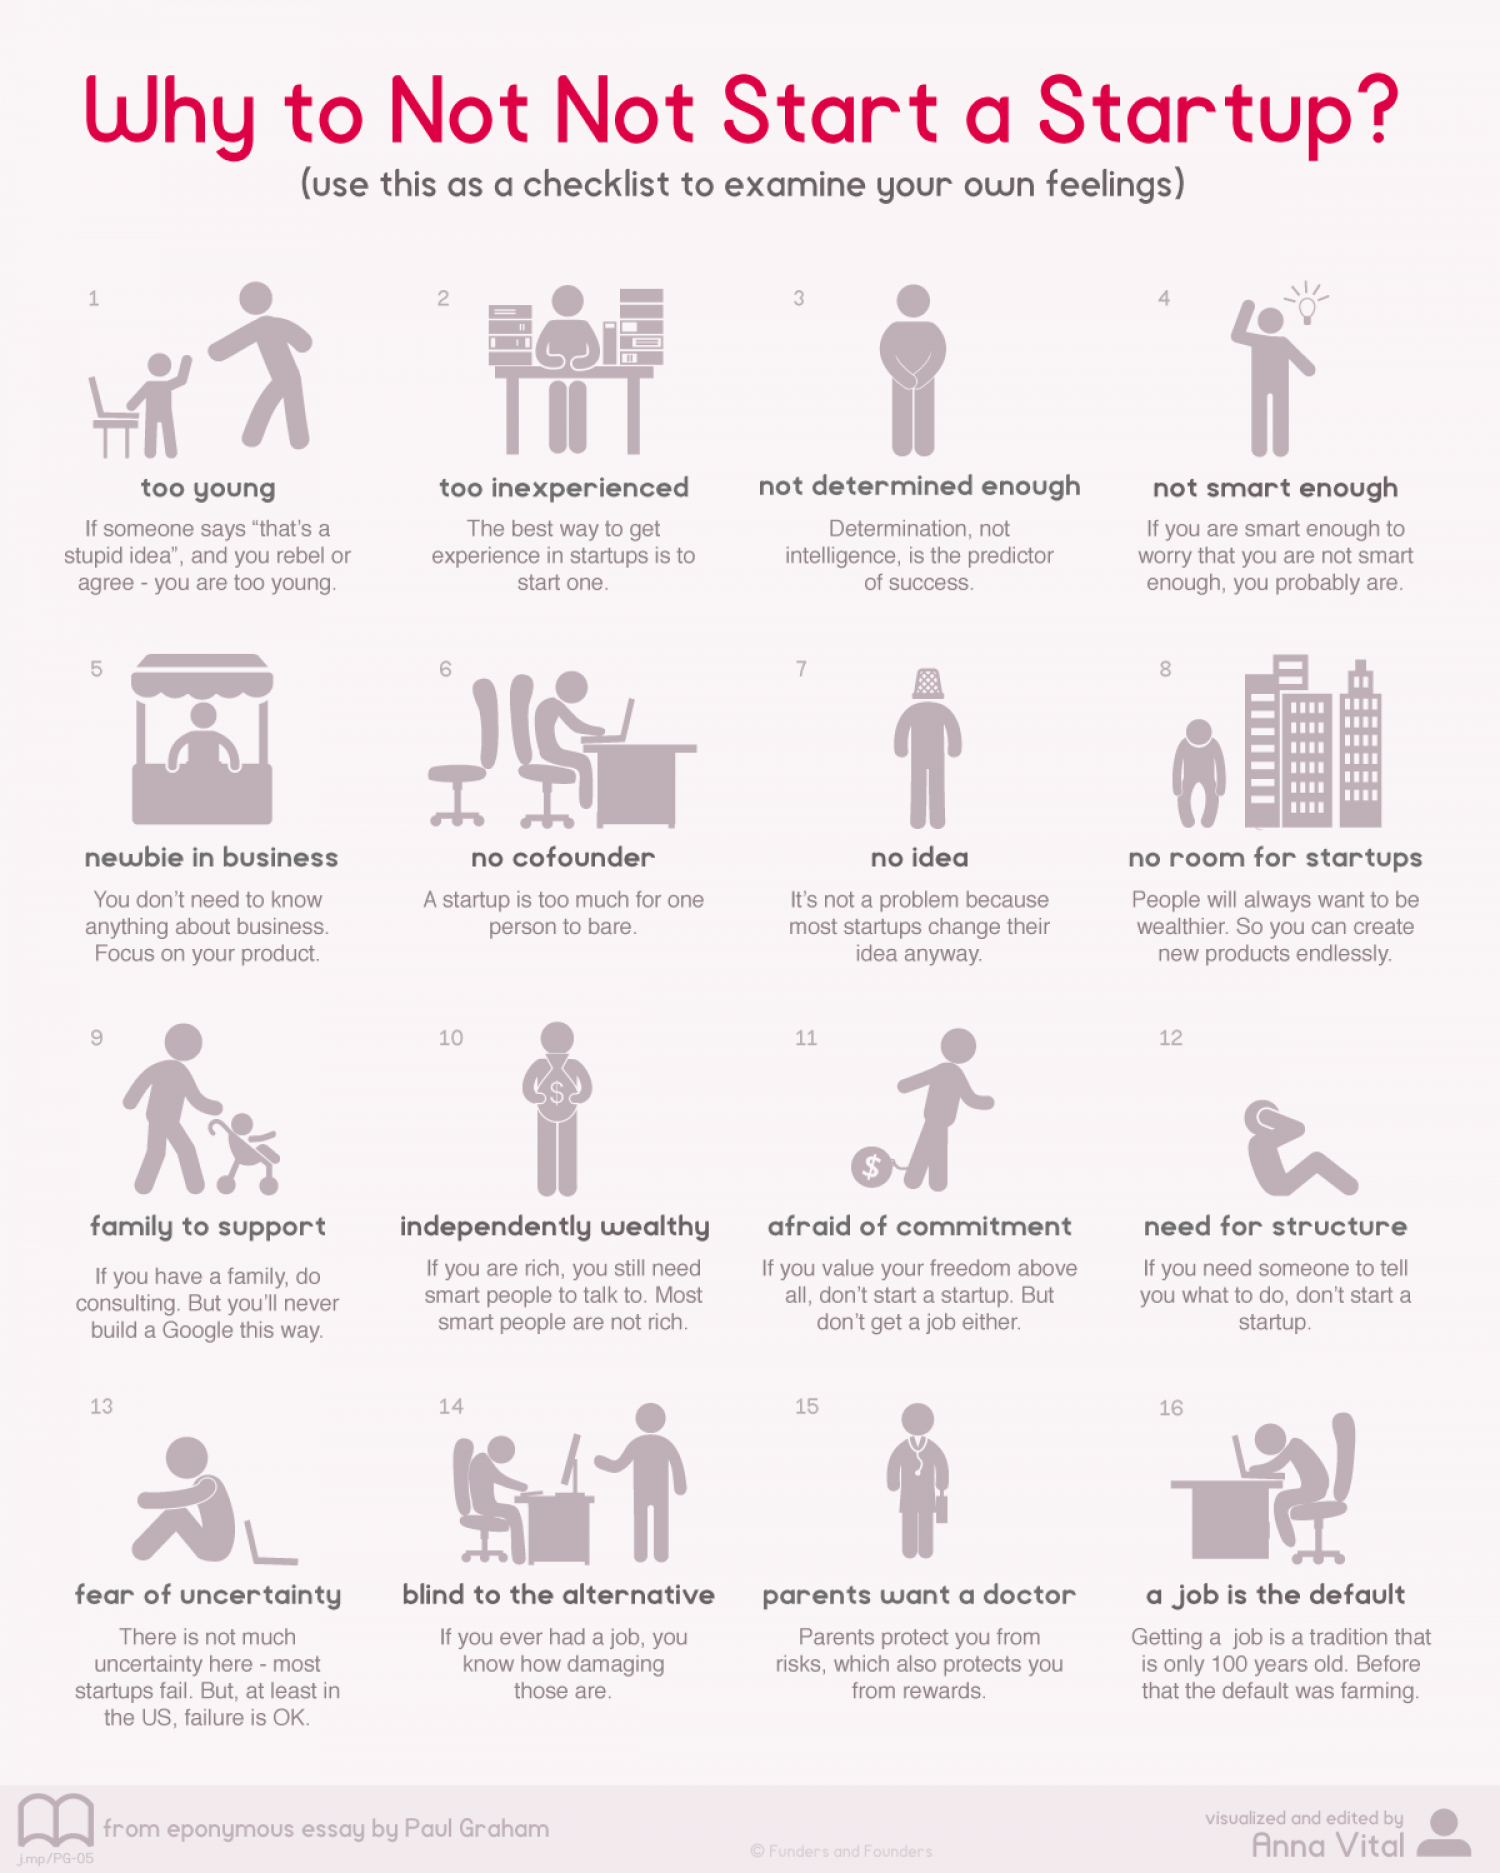 Why to Not Not Start a Startup Infographic